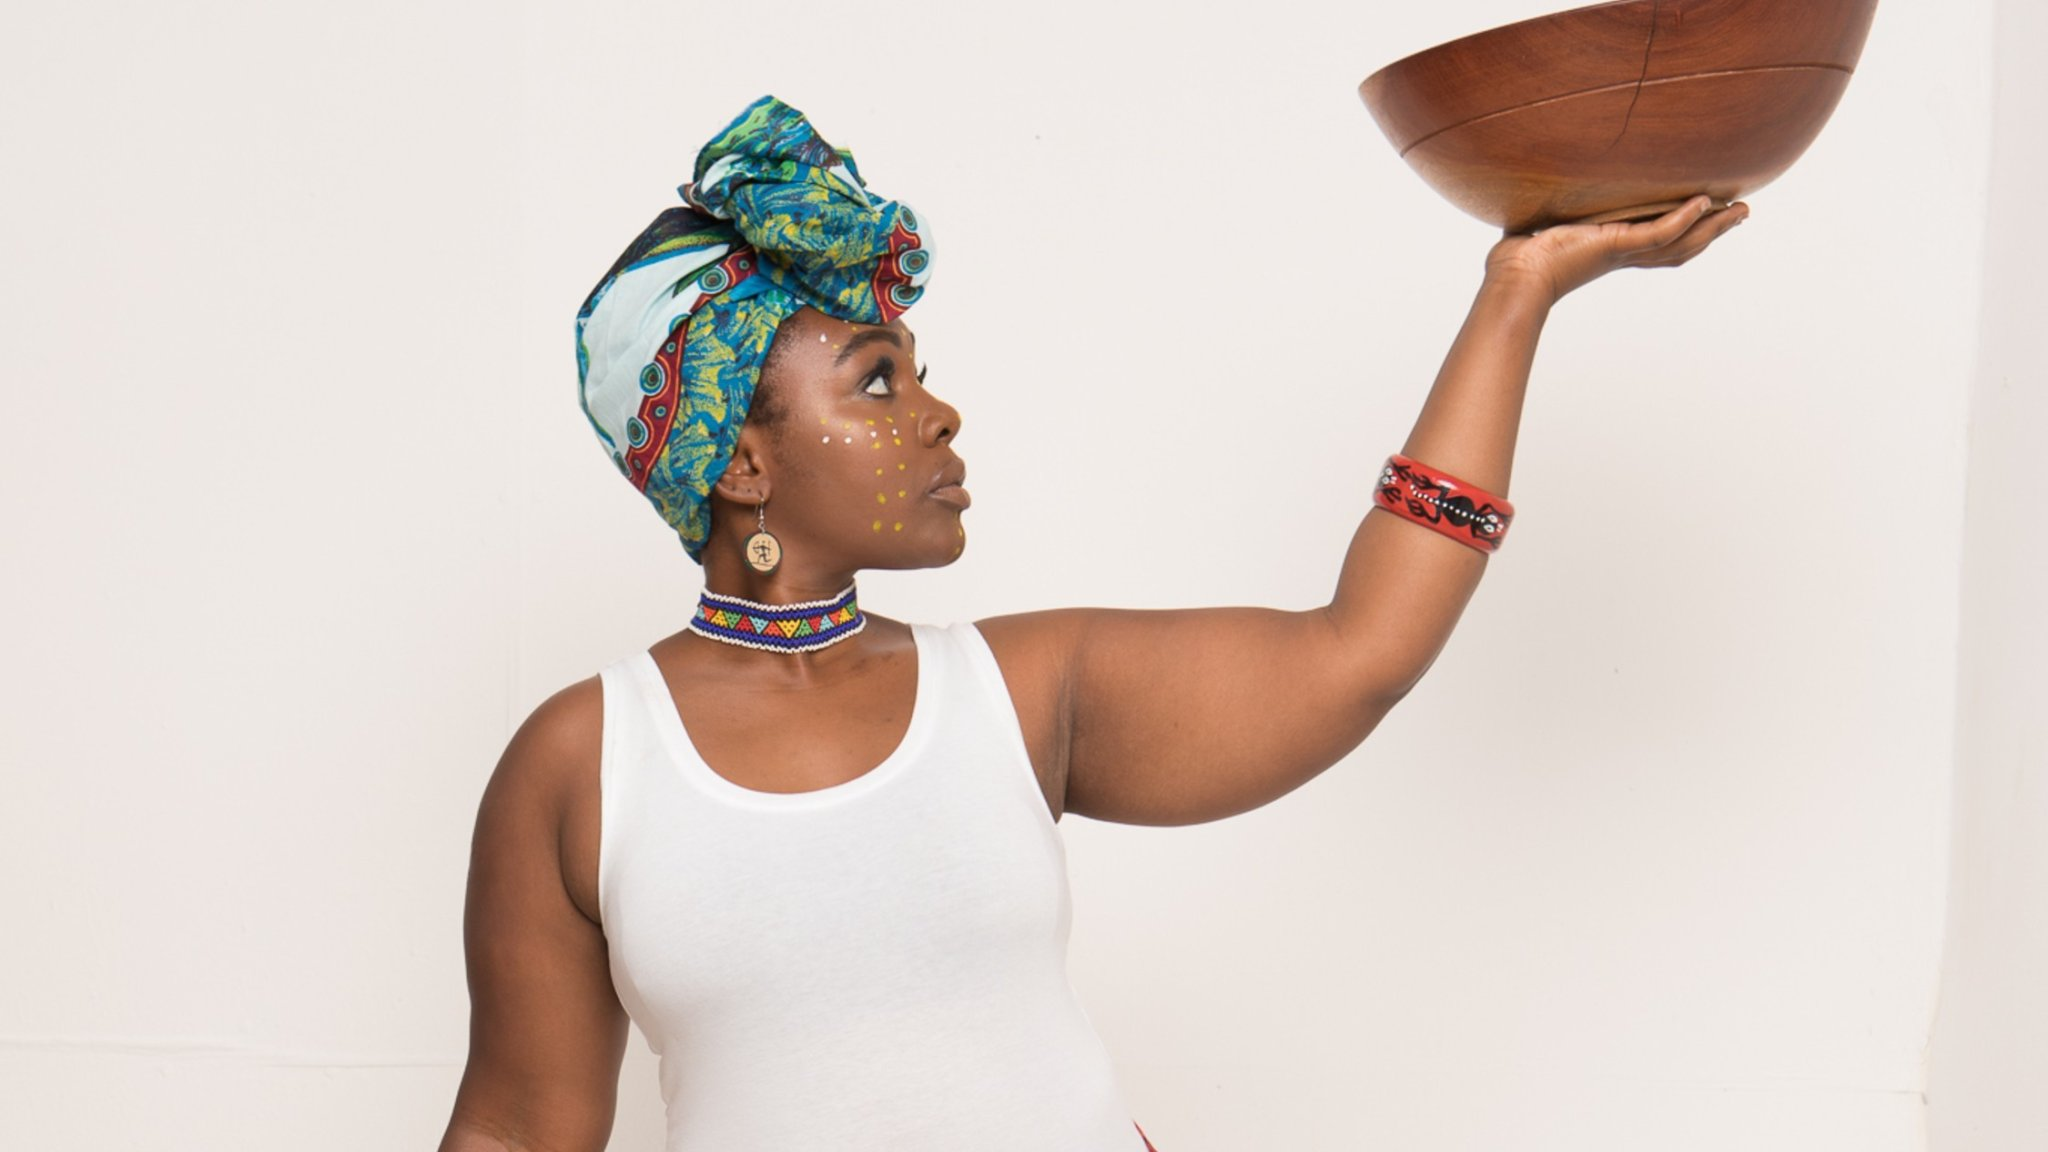 'Lion King' star Tarisai Vushe tells her own story in 'Out of Africa'